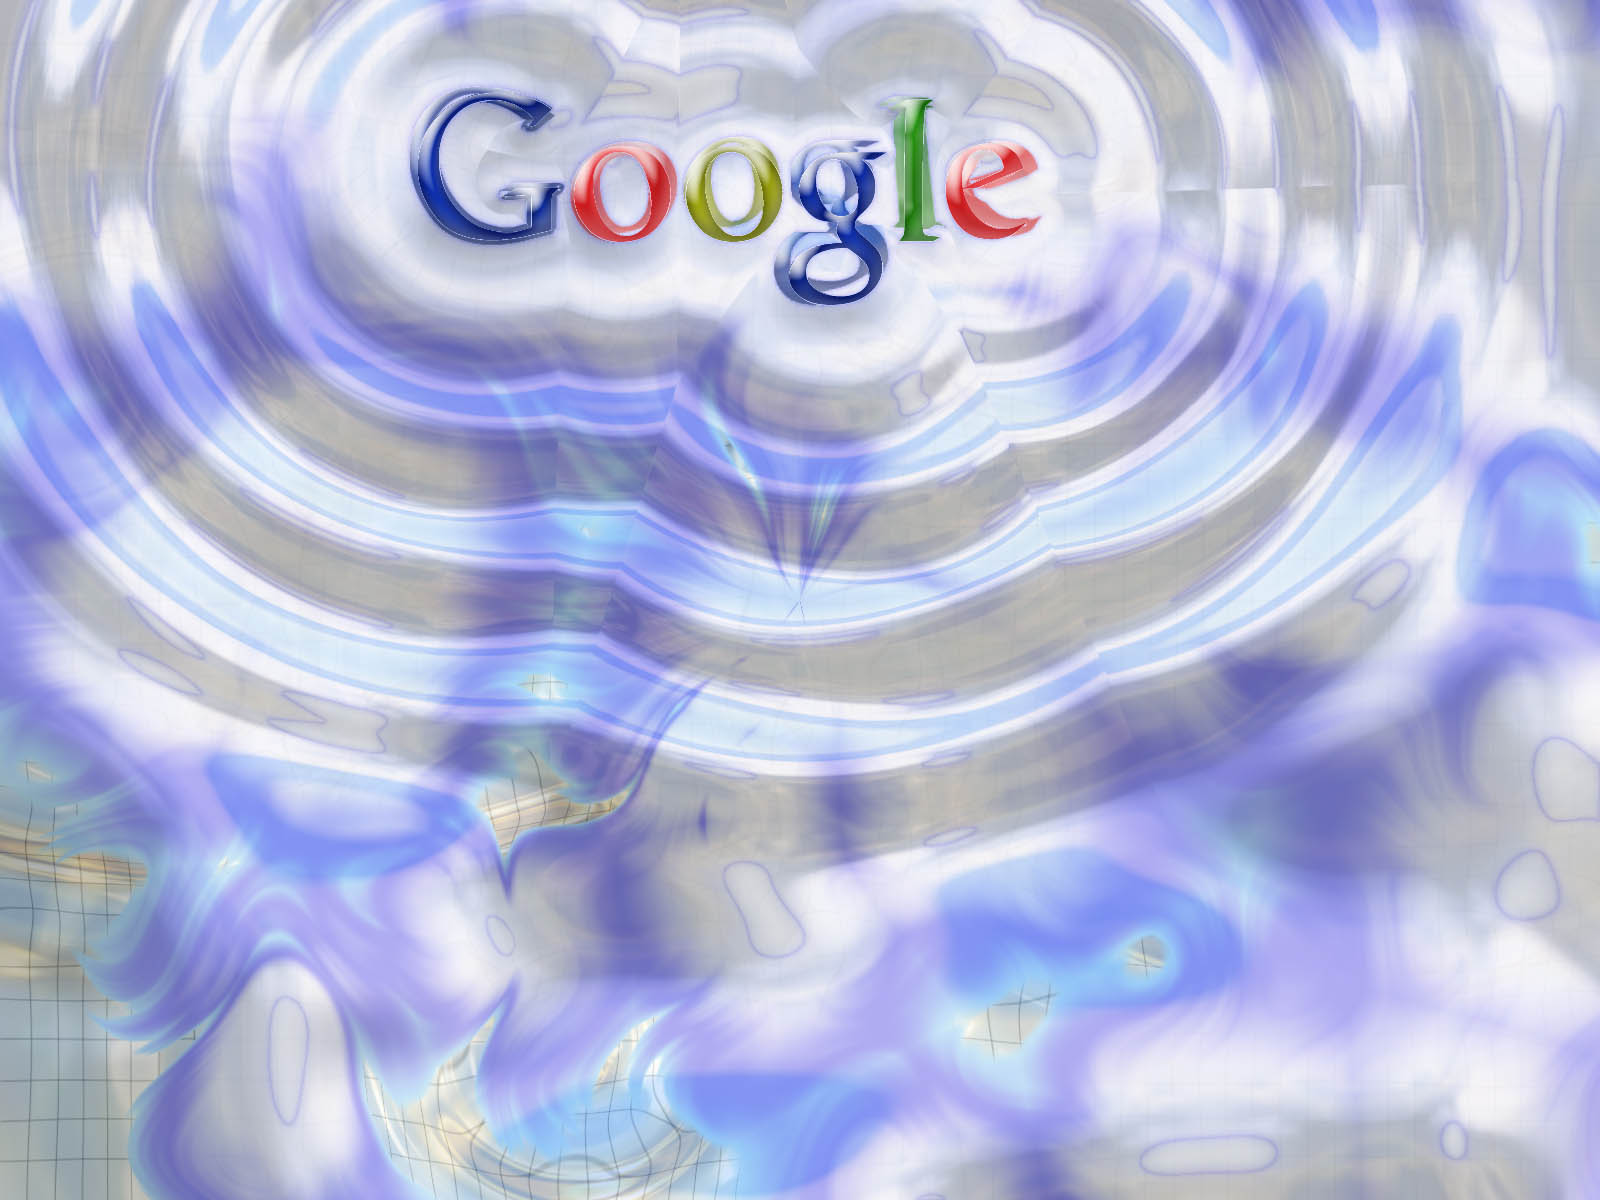 Google Backgrounds And Wallpapers - WPer Wallpaper